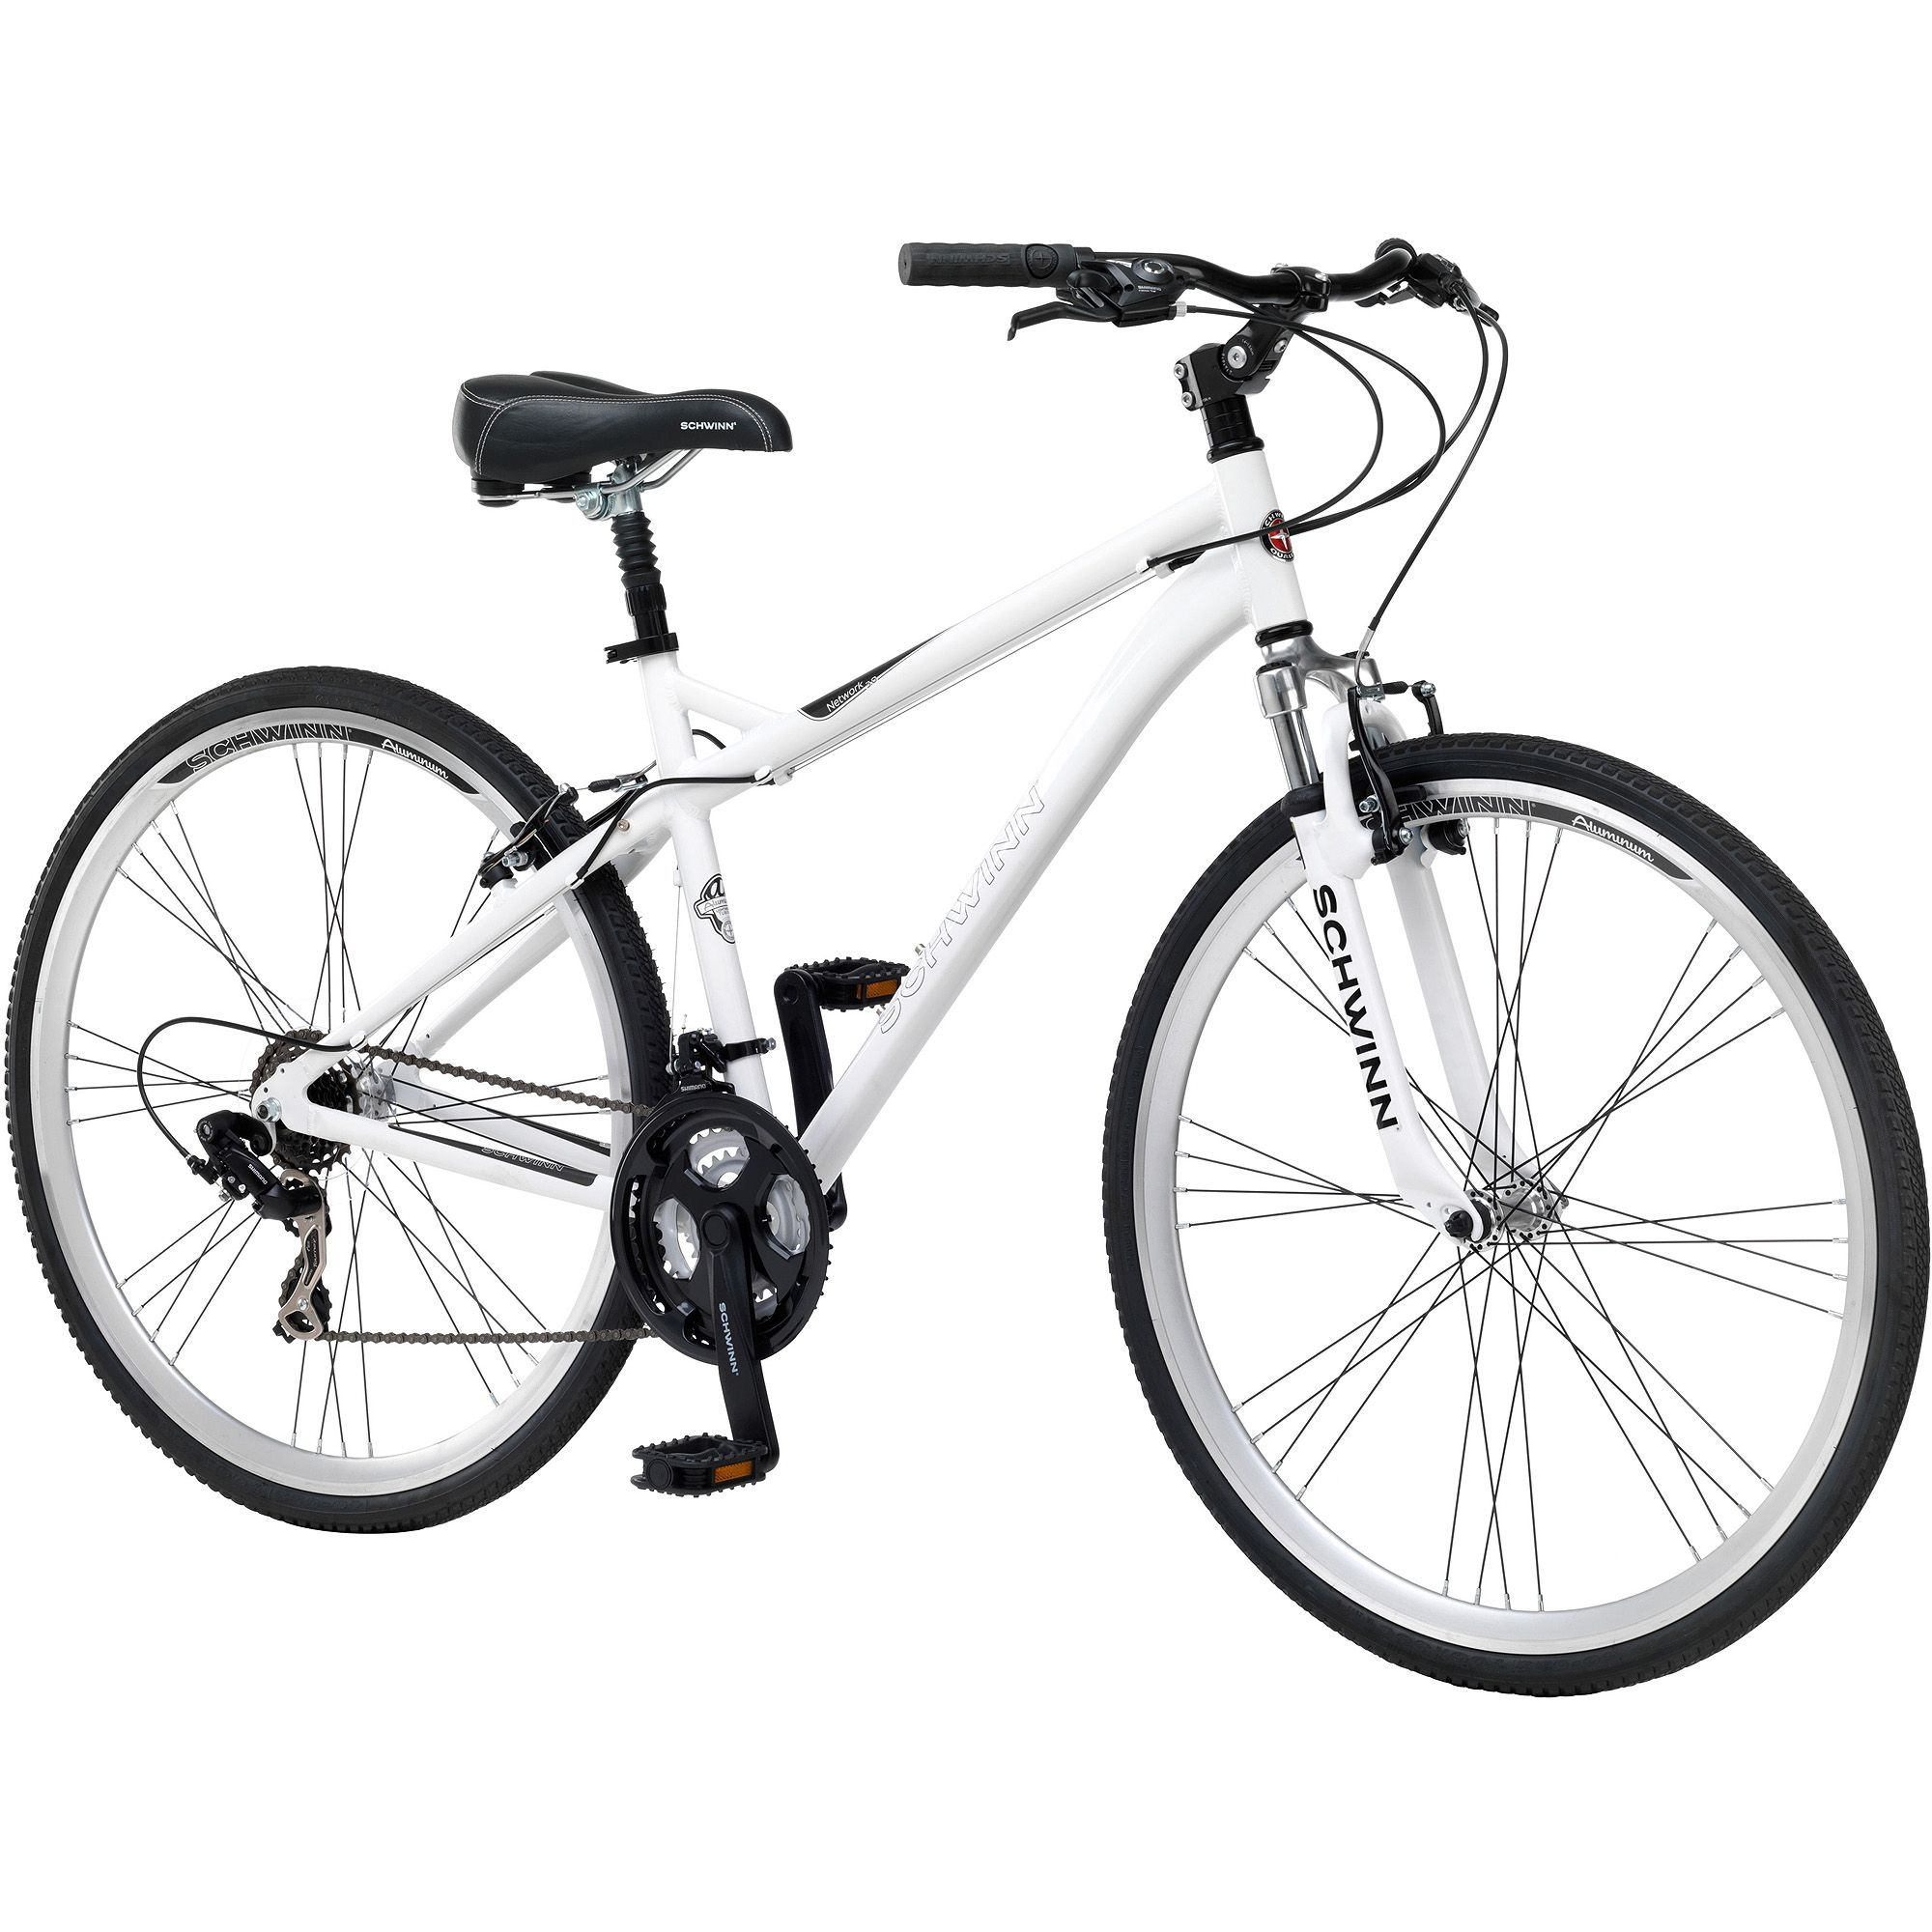 9ca47f0d43a 700c Schwinn Men's Network 3.0 Hybrid Bike - Walmart.com | unicycle ...